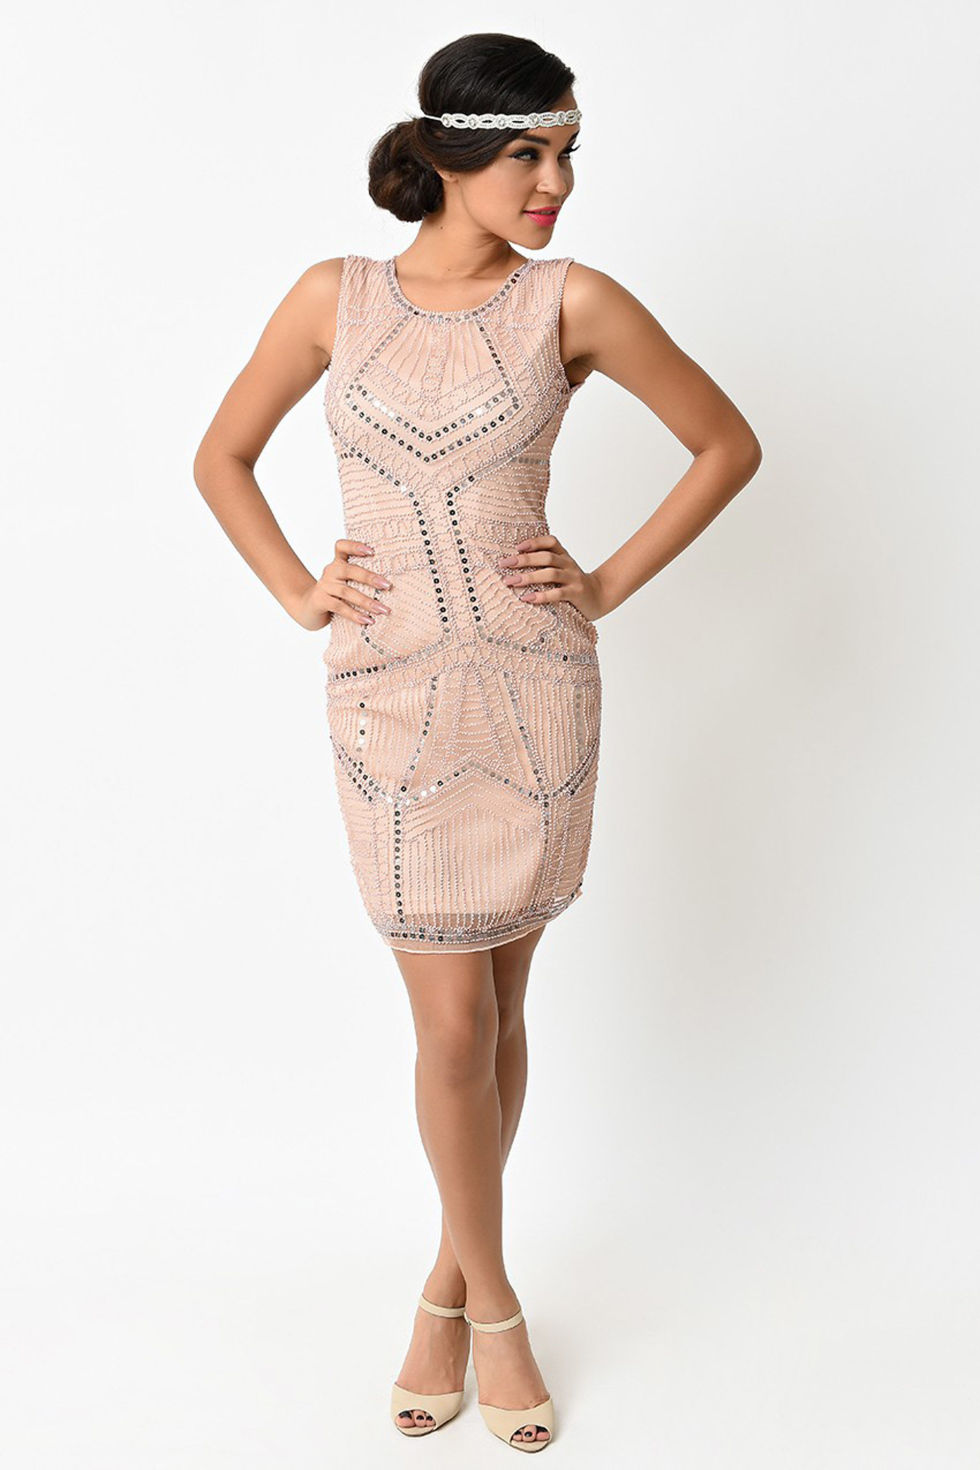 The dress gallery - The Dress Gallery 57